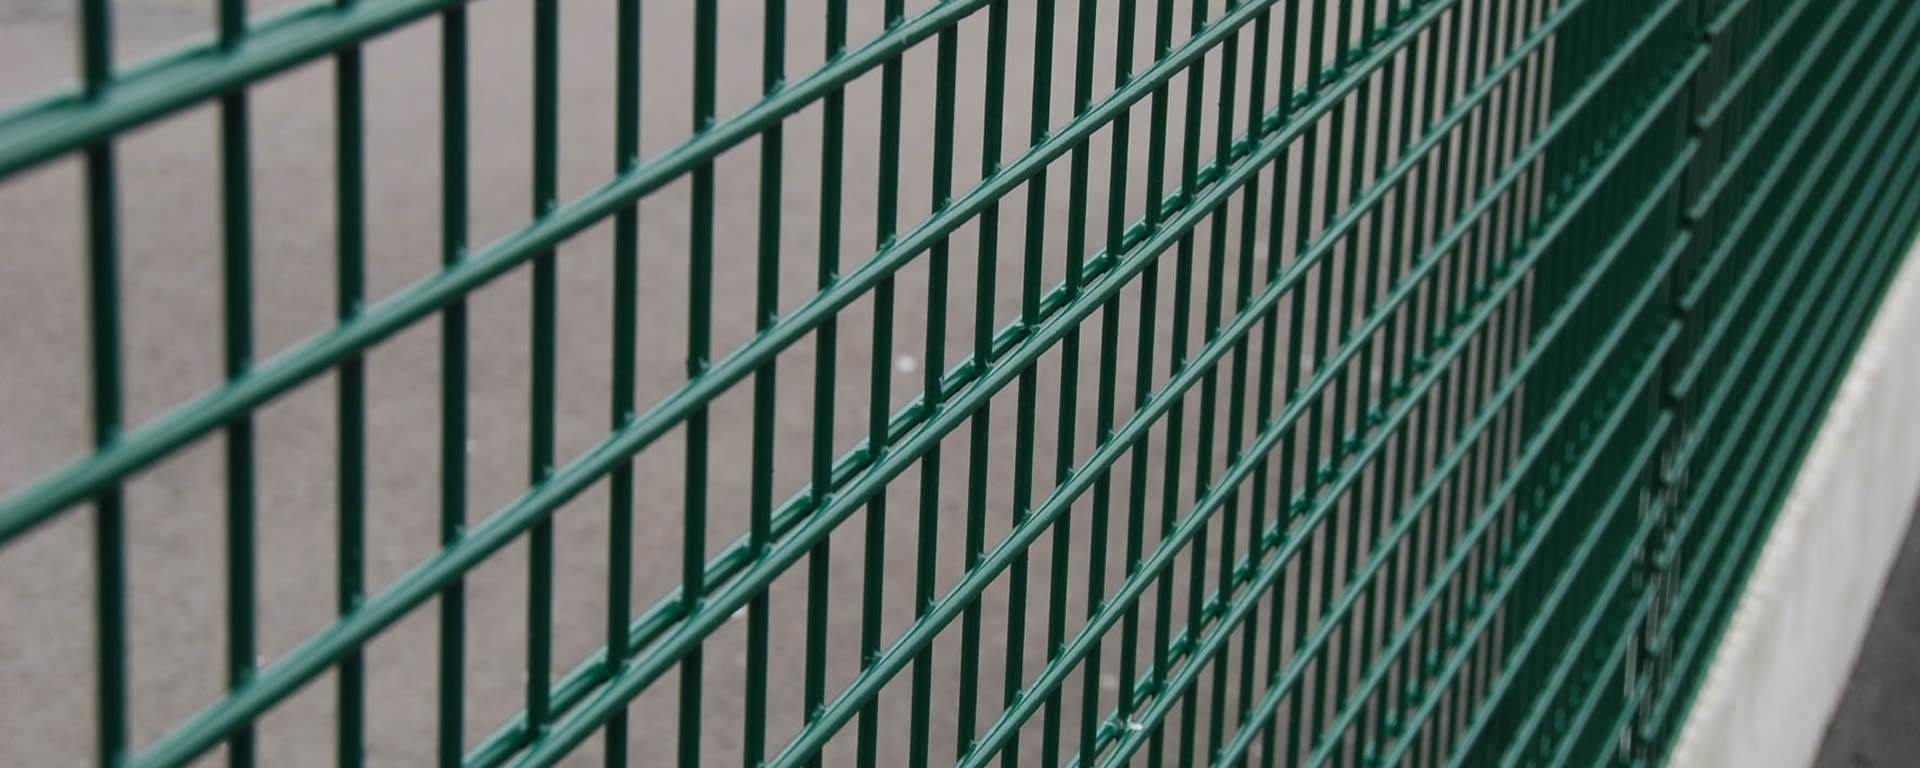 Mesh fence high security welded panel fencing barrier